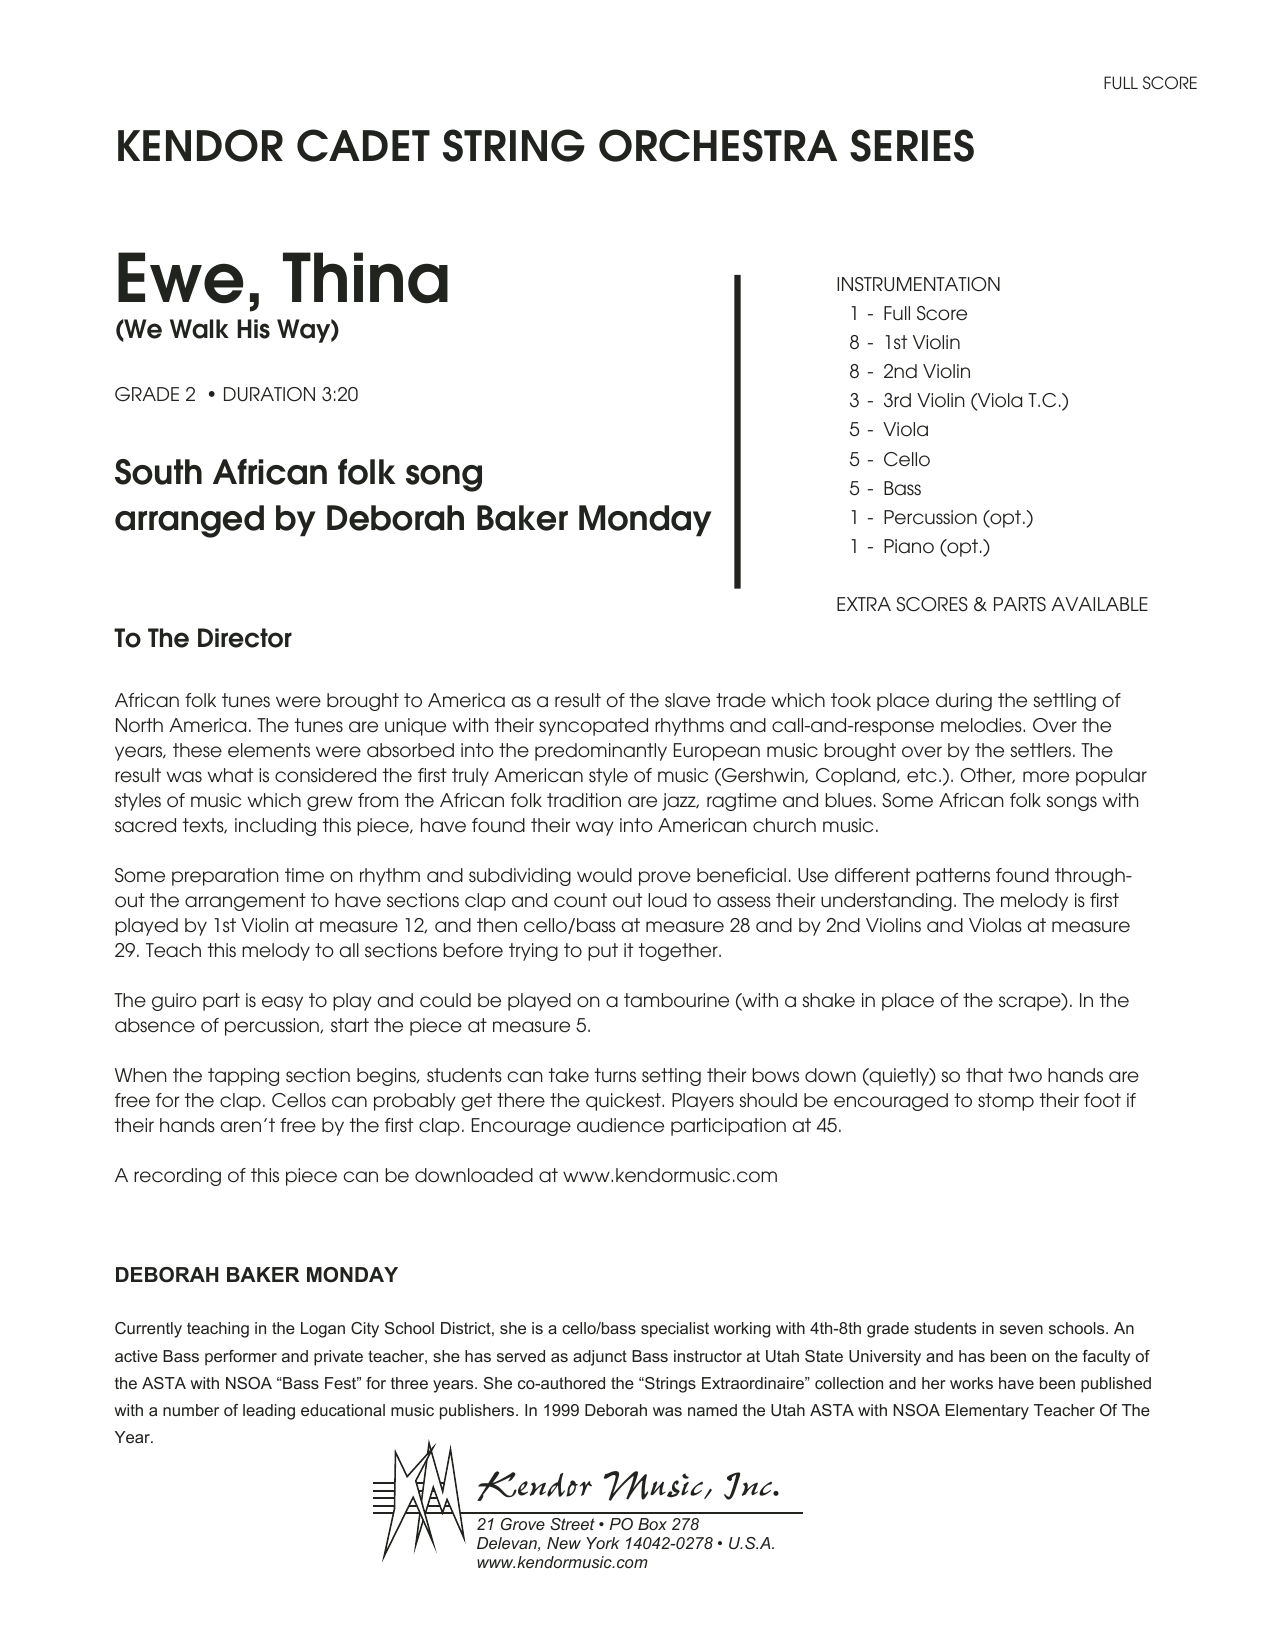 Ewe, Thina (We Walk His Way) - Full Score